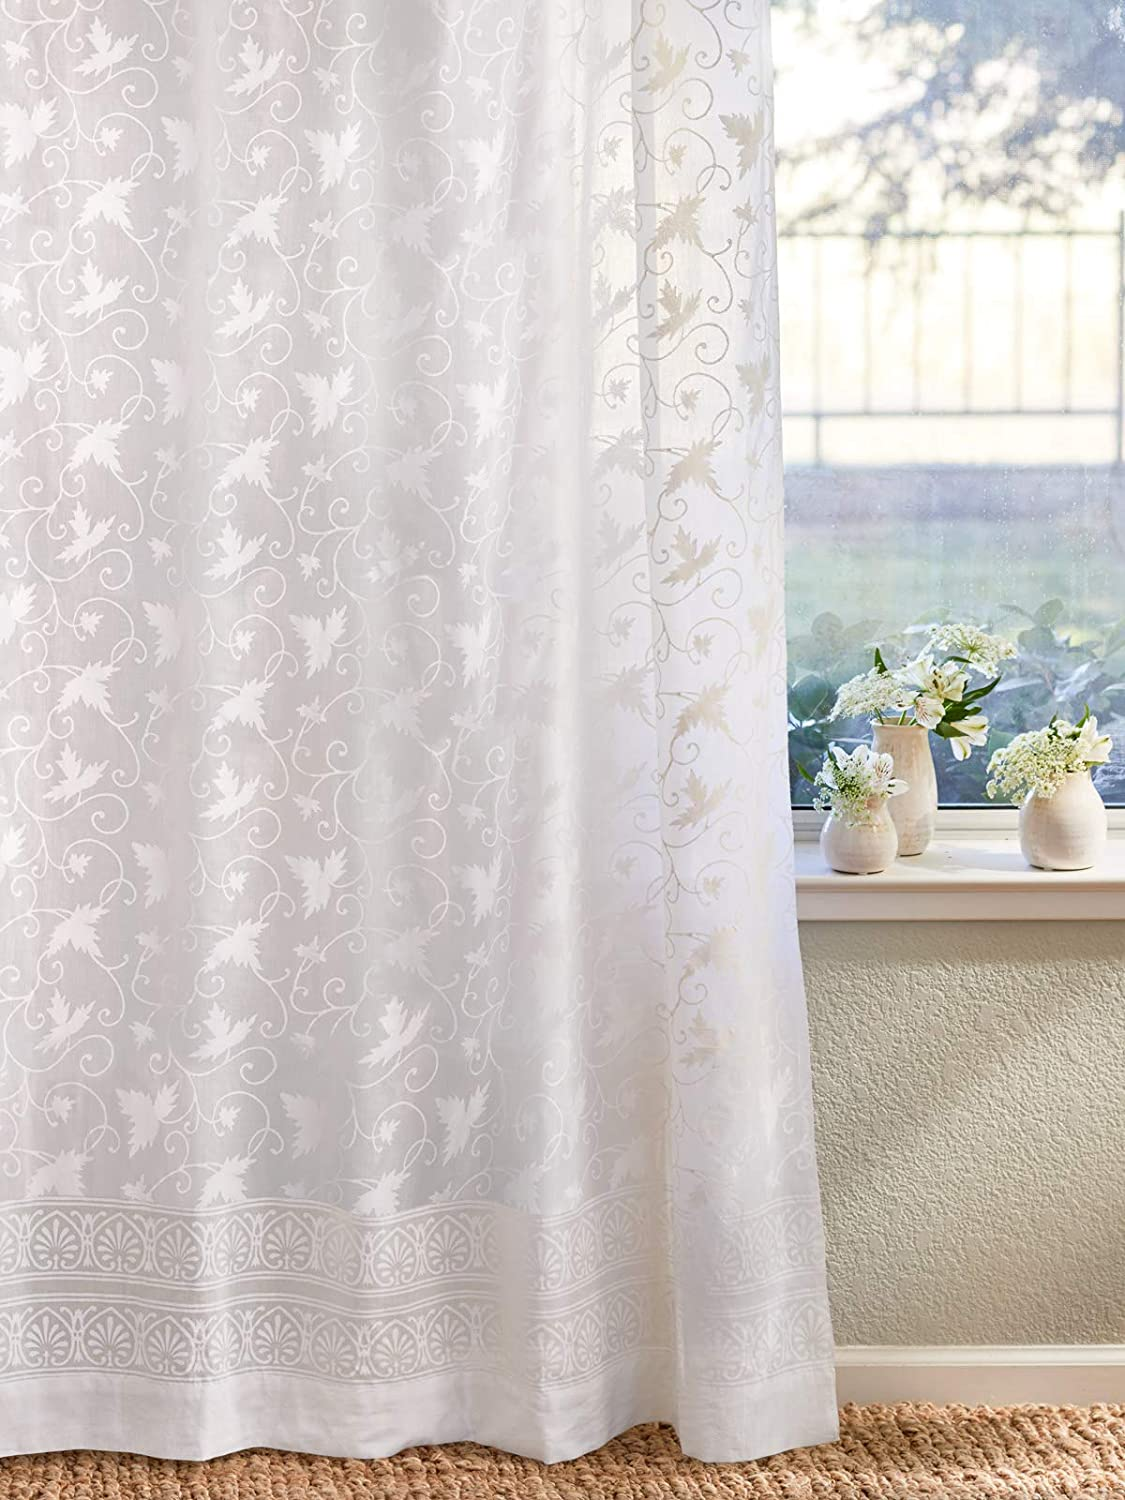 Saffron Marigold Ivy Lace Sheer White Curtains | Country Cottage Cotton Voile Floral Printed Long Curtain Panels With Rod Pocket